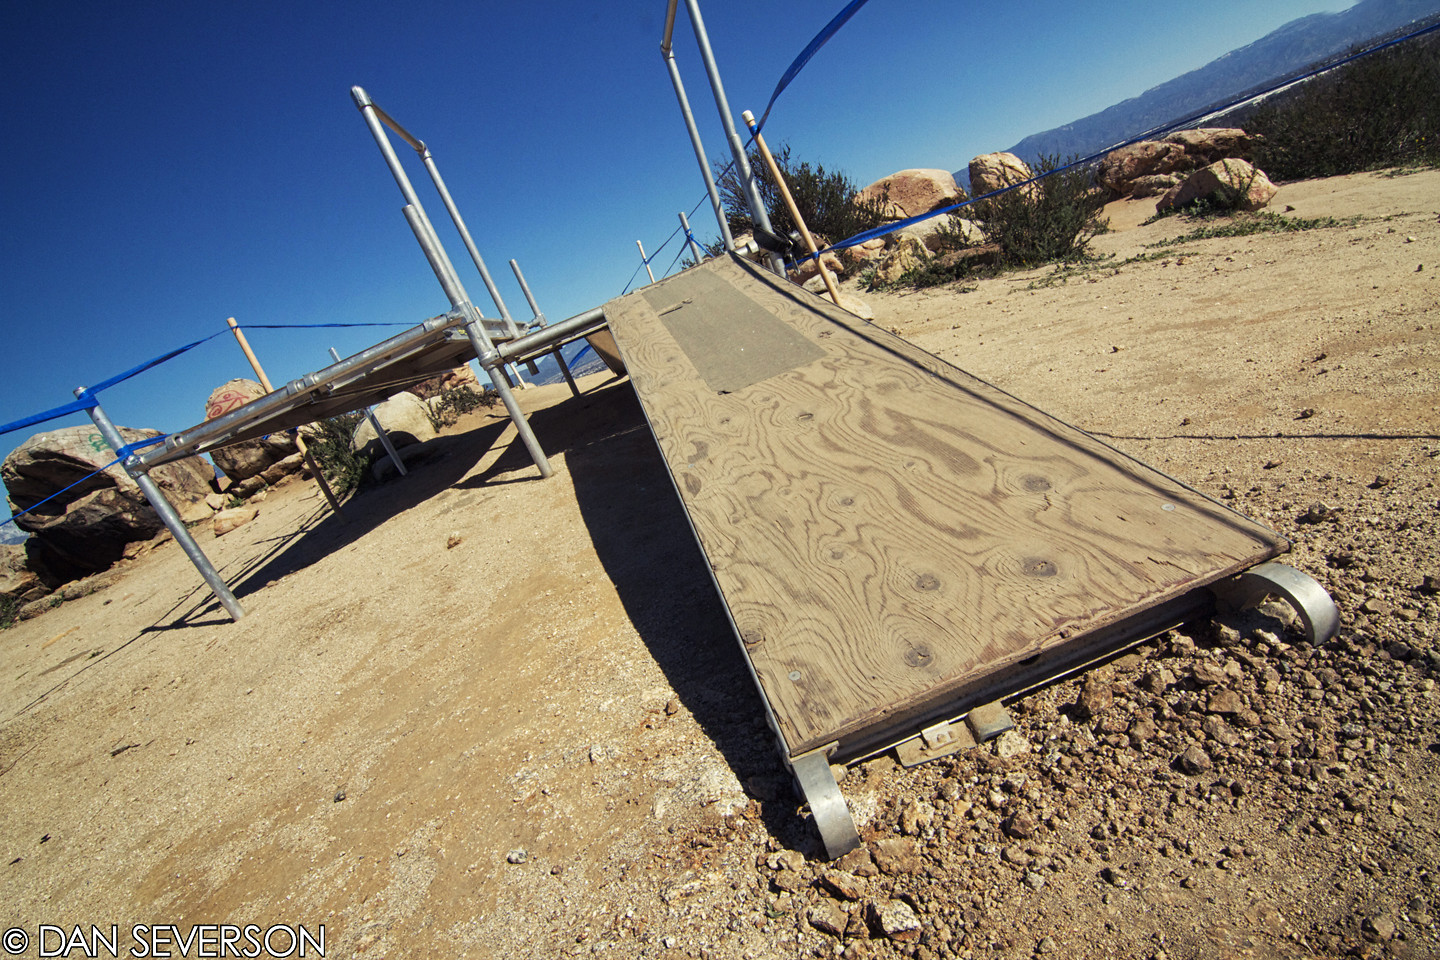 Starting Gate  - danseverson photo - Mountain Biking Pictures - Vital MTB